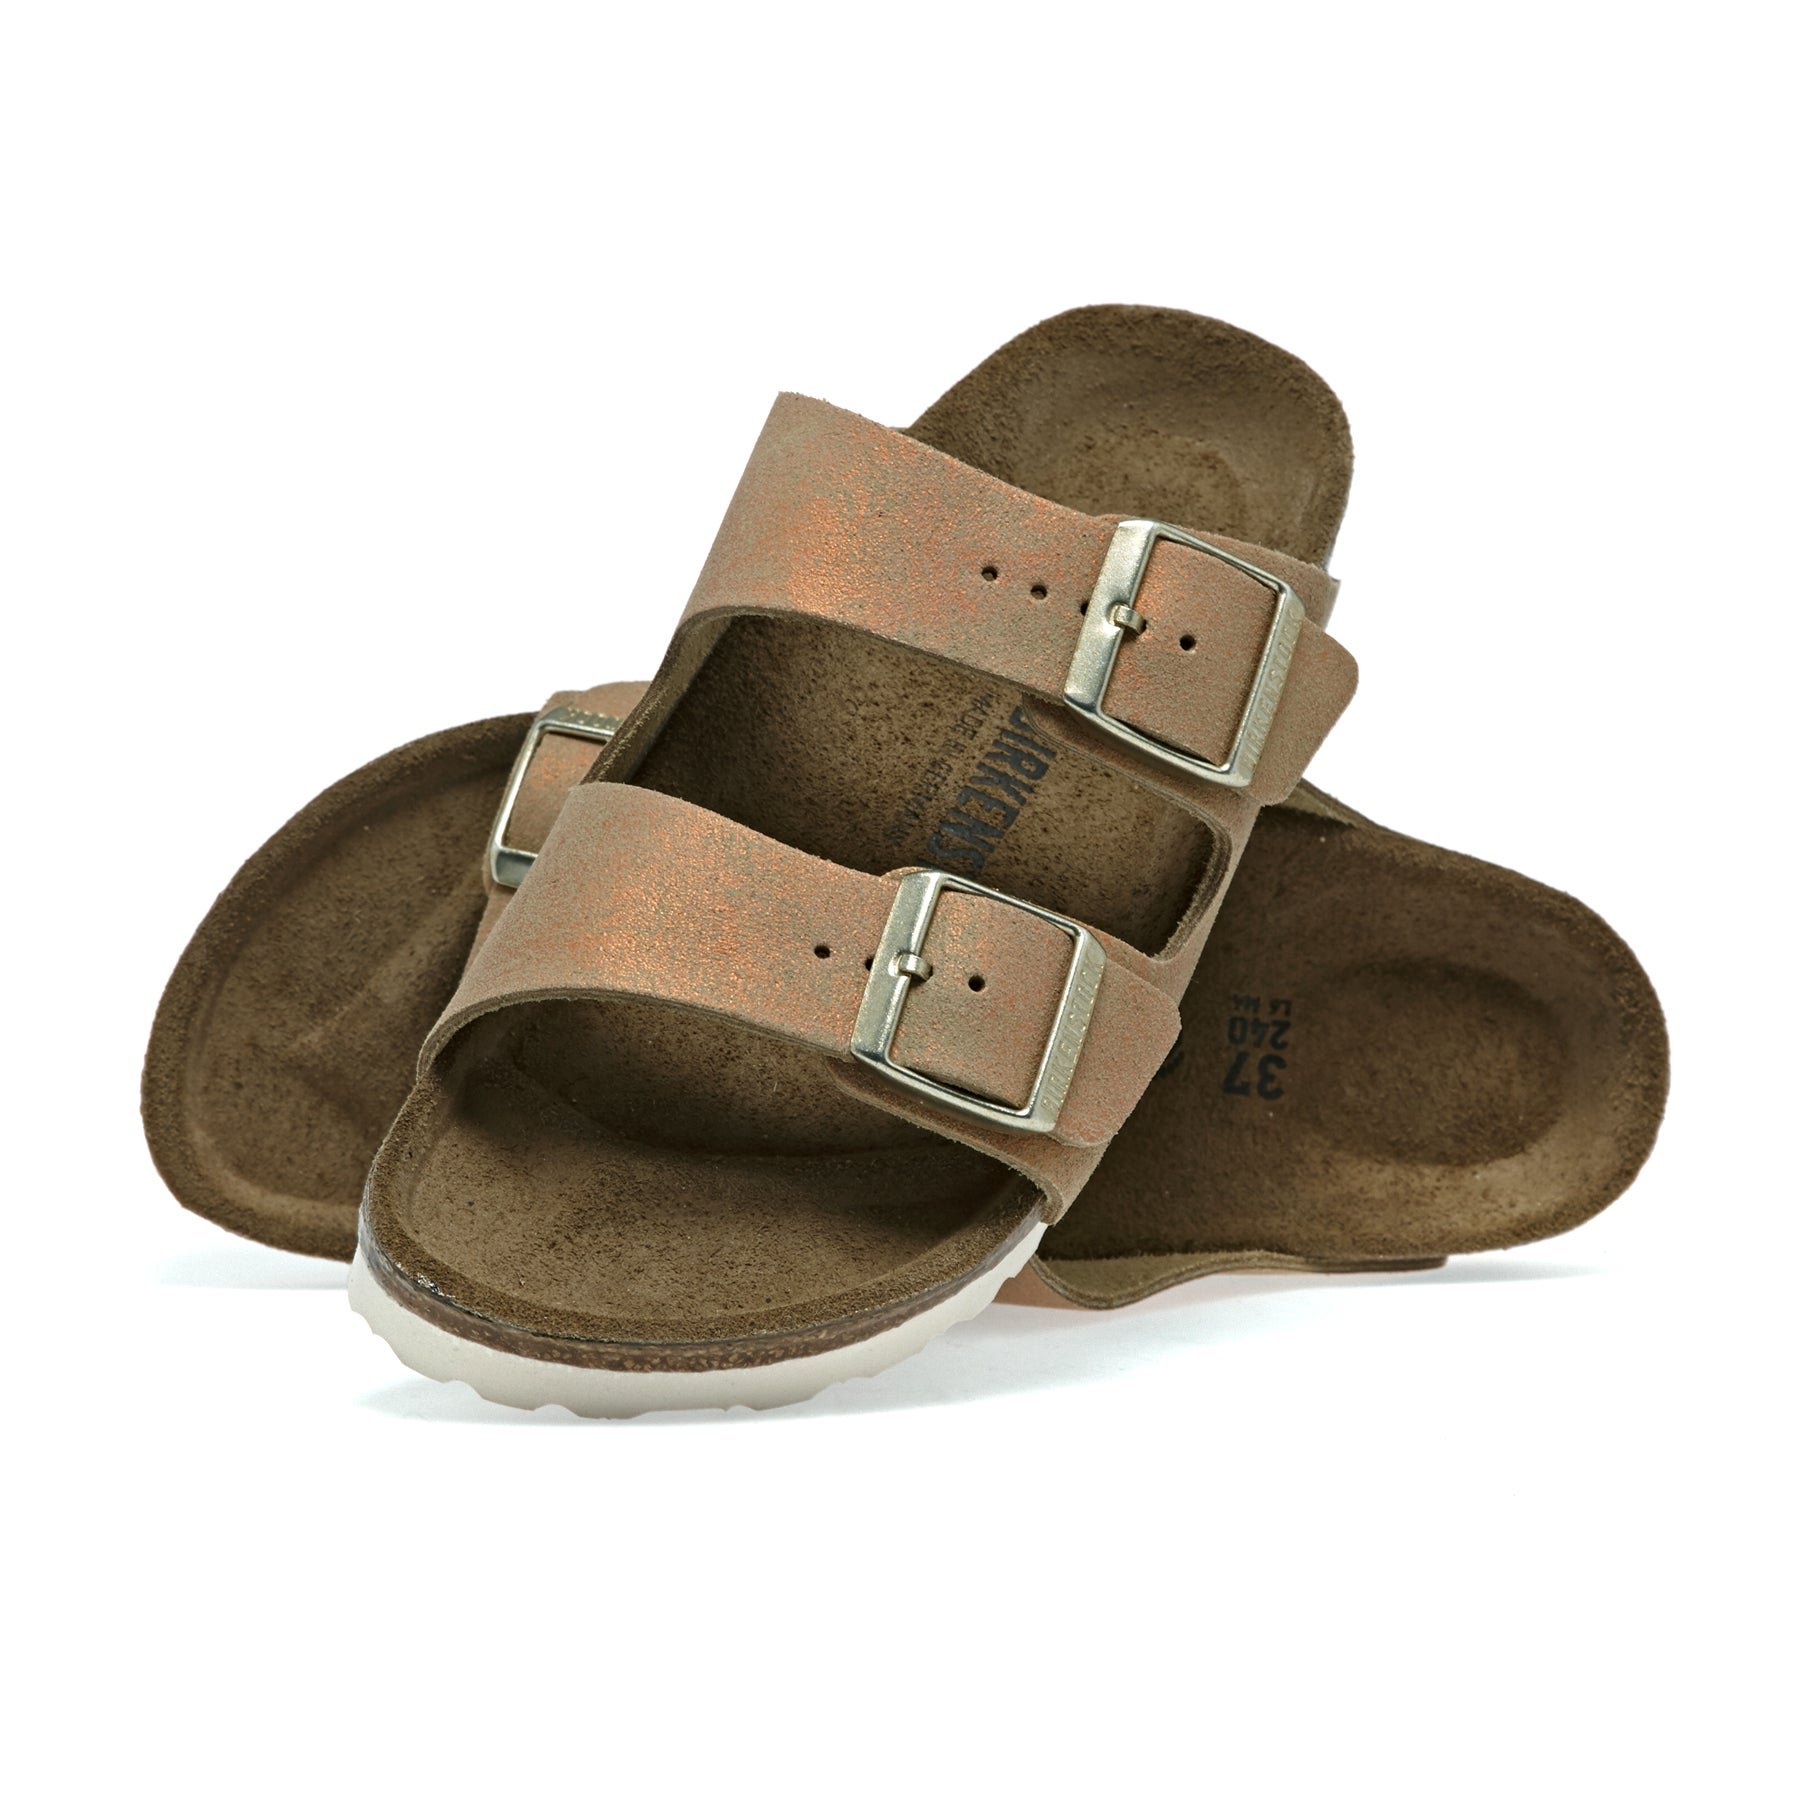 Birkenstock Arizona Sandals - Washed Metallic Sea Copper